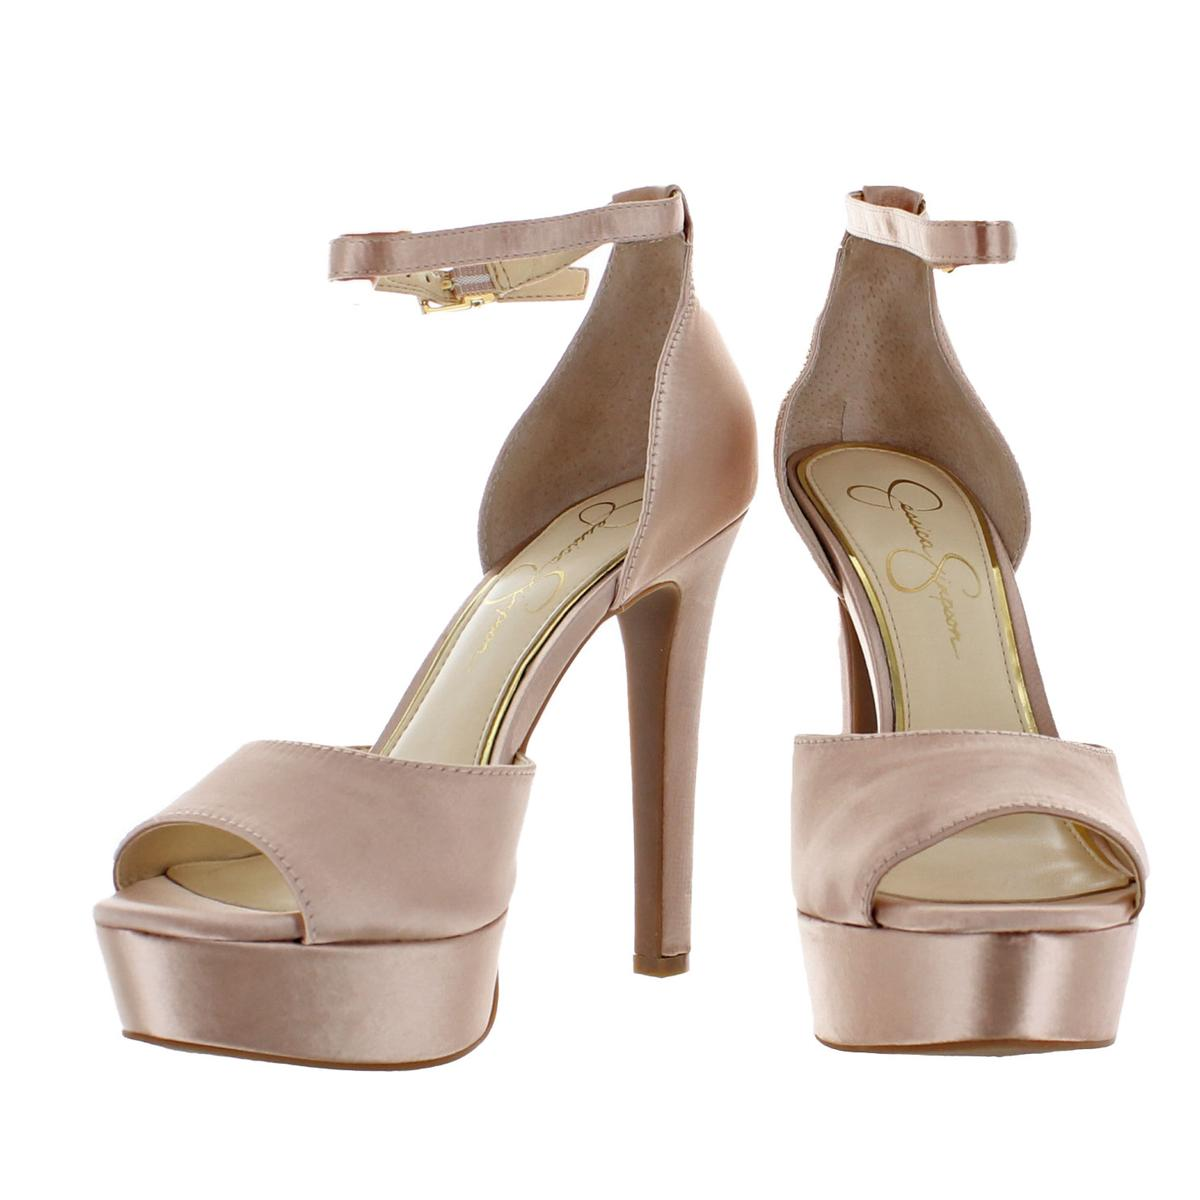 Jessica-Simpson-Women-039-s-Beeya-Ankle-Strap-Platform-Heeled-Sandals-Shoes thumbnail 7